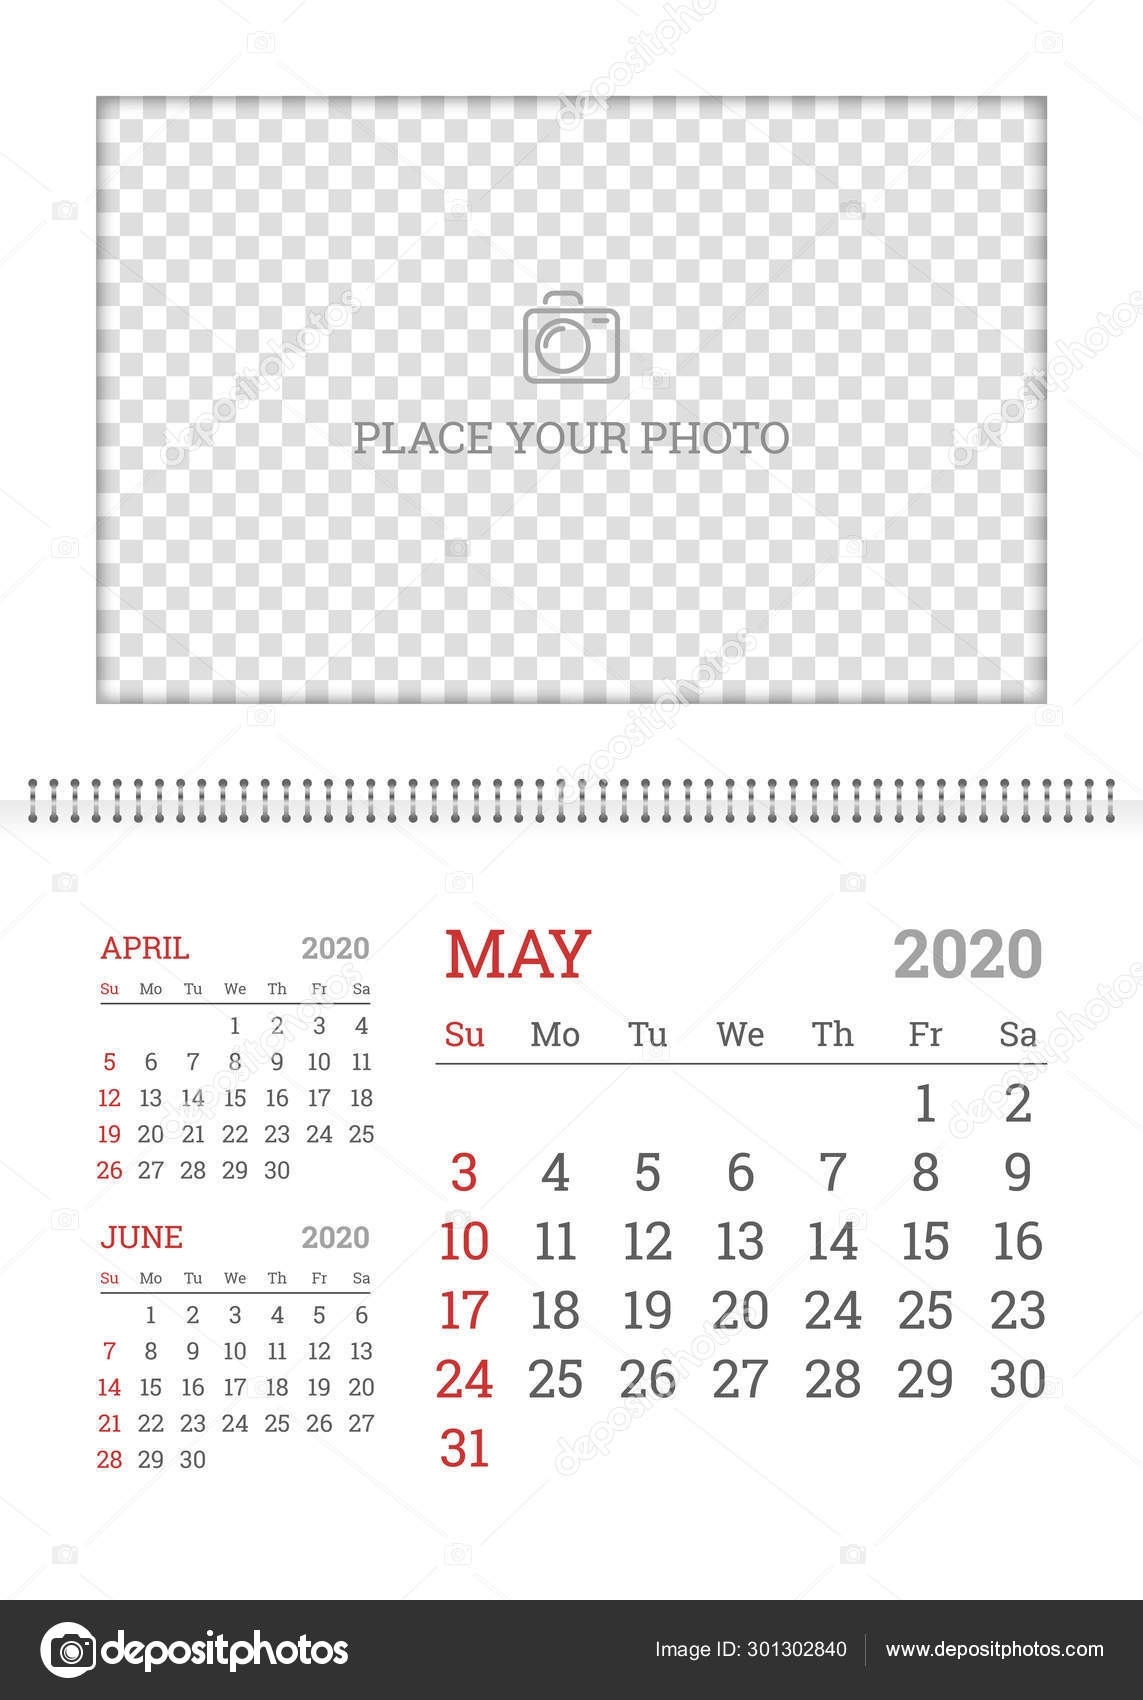 Wall Calendar Planner Template For May 2020 — Stock Vector